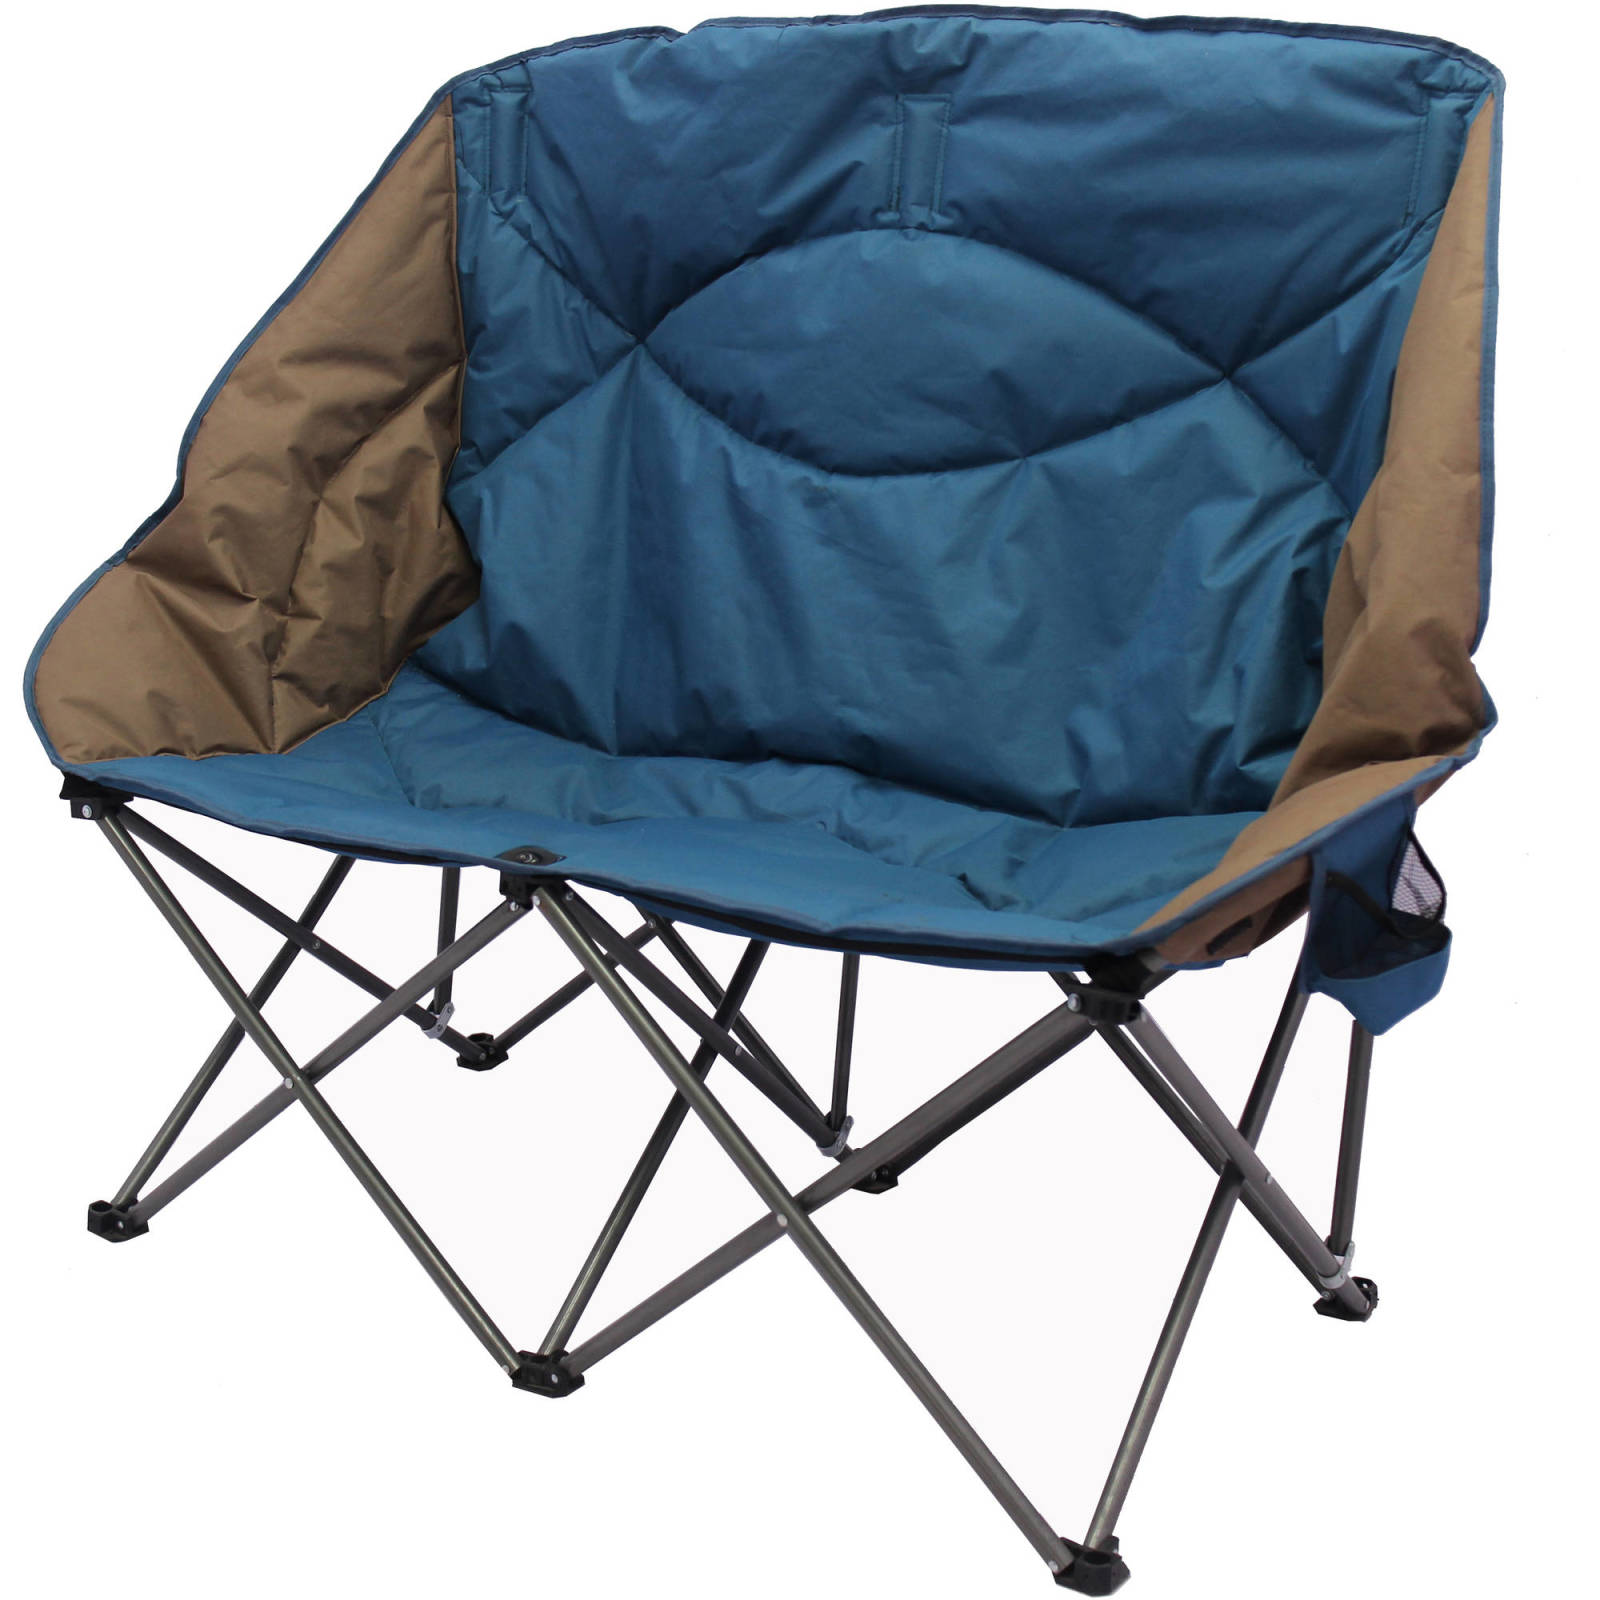 Double Folding Camping Chair Portable Camp Beach Outdoor Loveseat